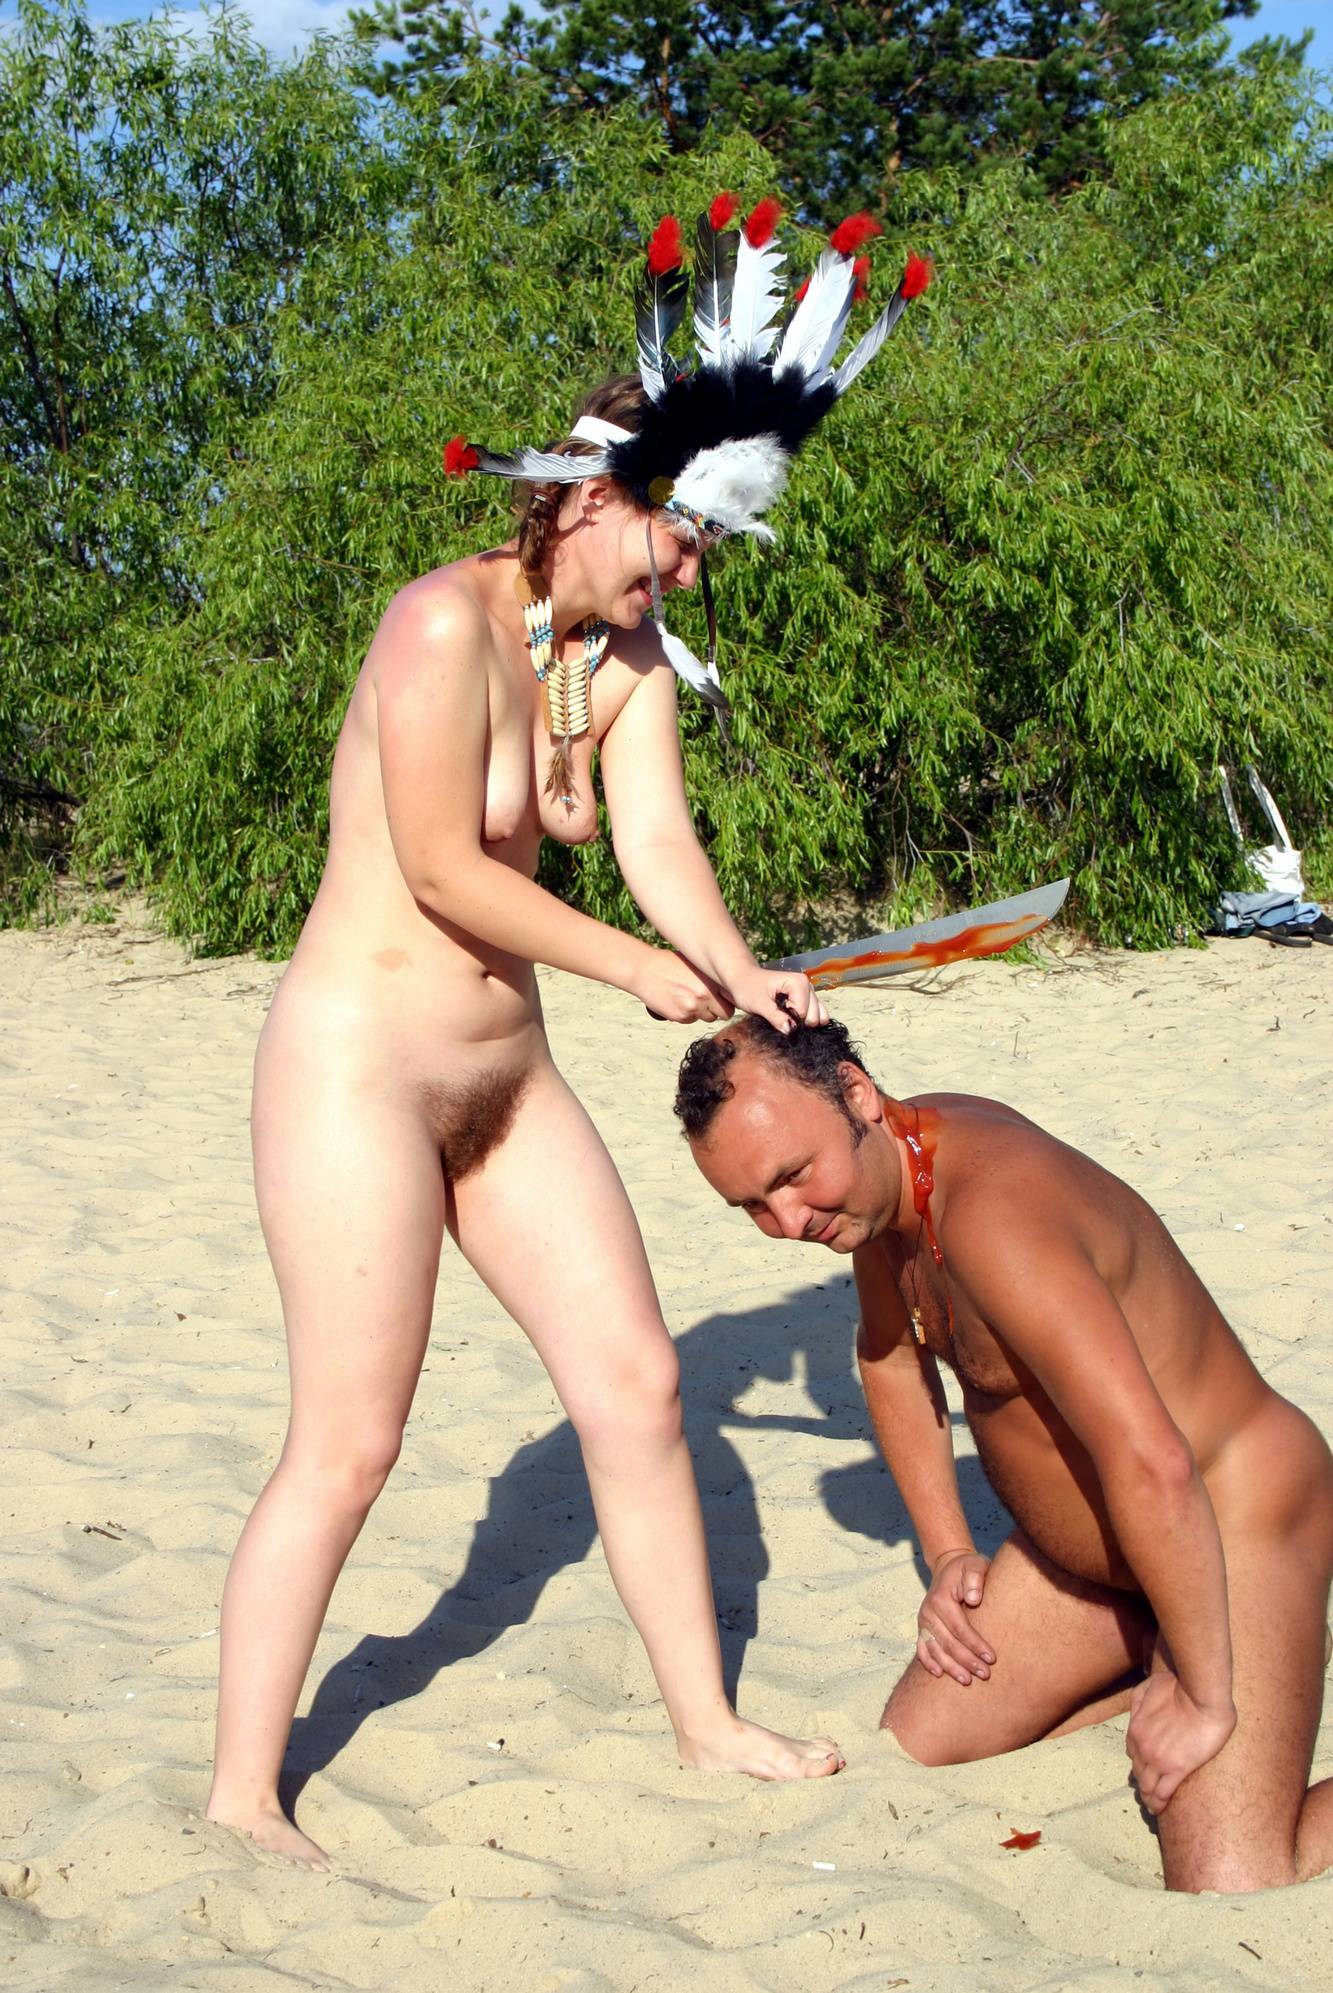 Nudist Pictures Nude Dress Battles Begin - 1